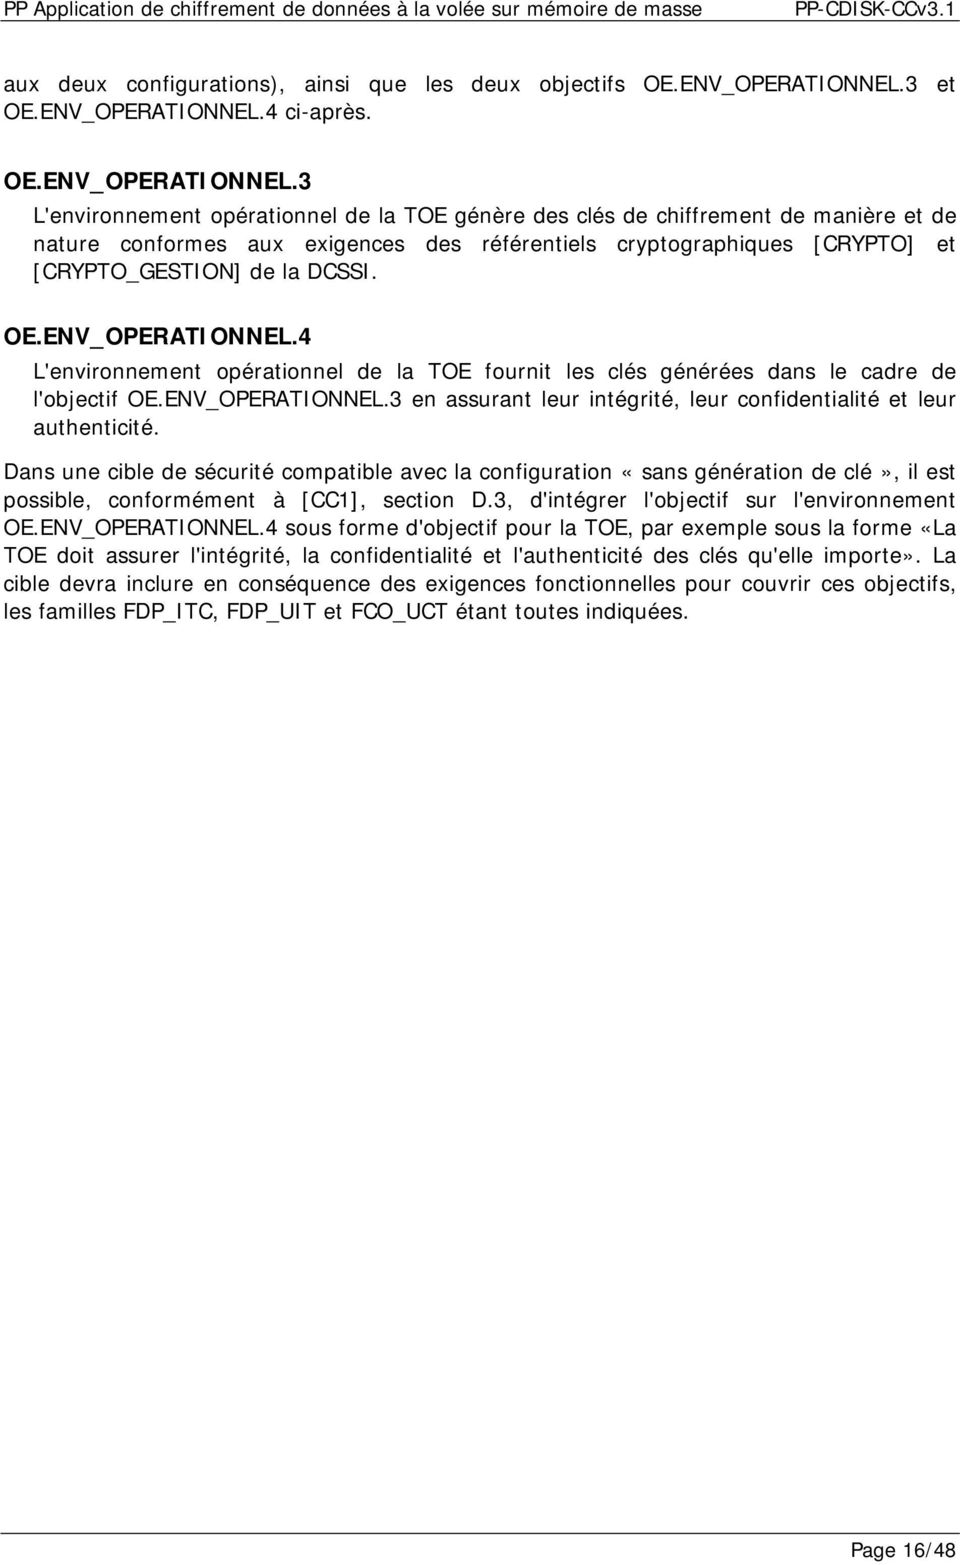 4 ci-après. OE.ENV_OPERATIONNEL.